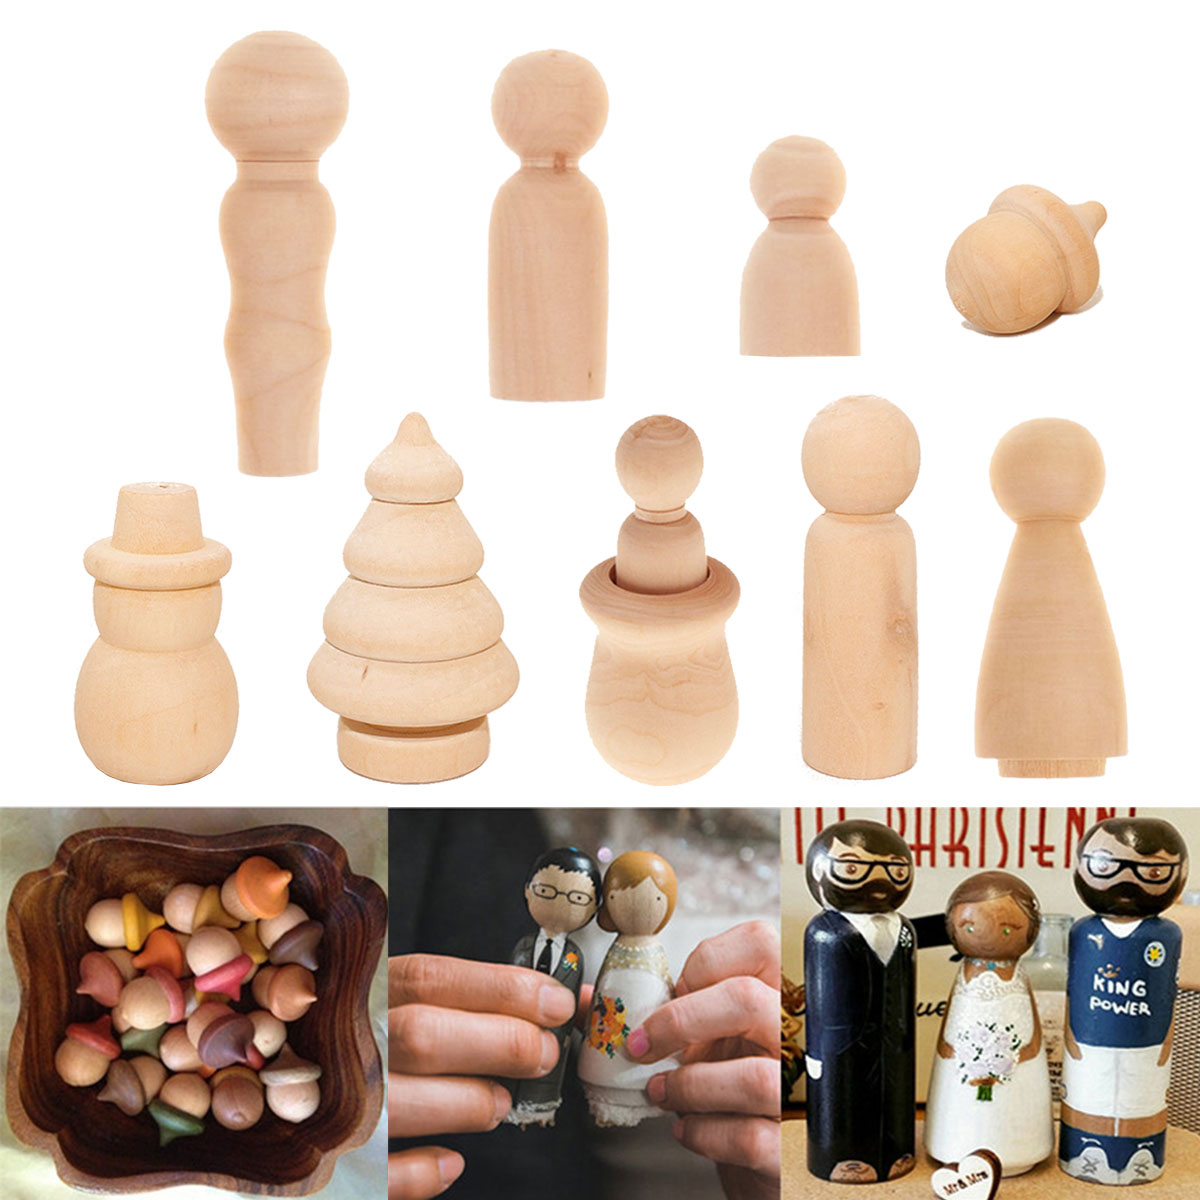 10Pcs/Lot Creative DIY Painting Puppet Toys Children Adults Handmade Painting Wooden Crafts Christmas Wedding Dolls Ornaments